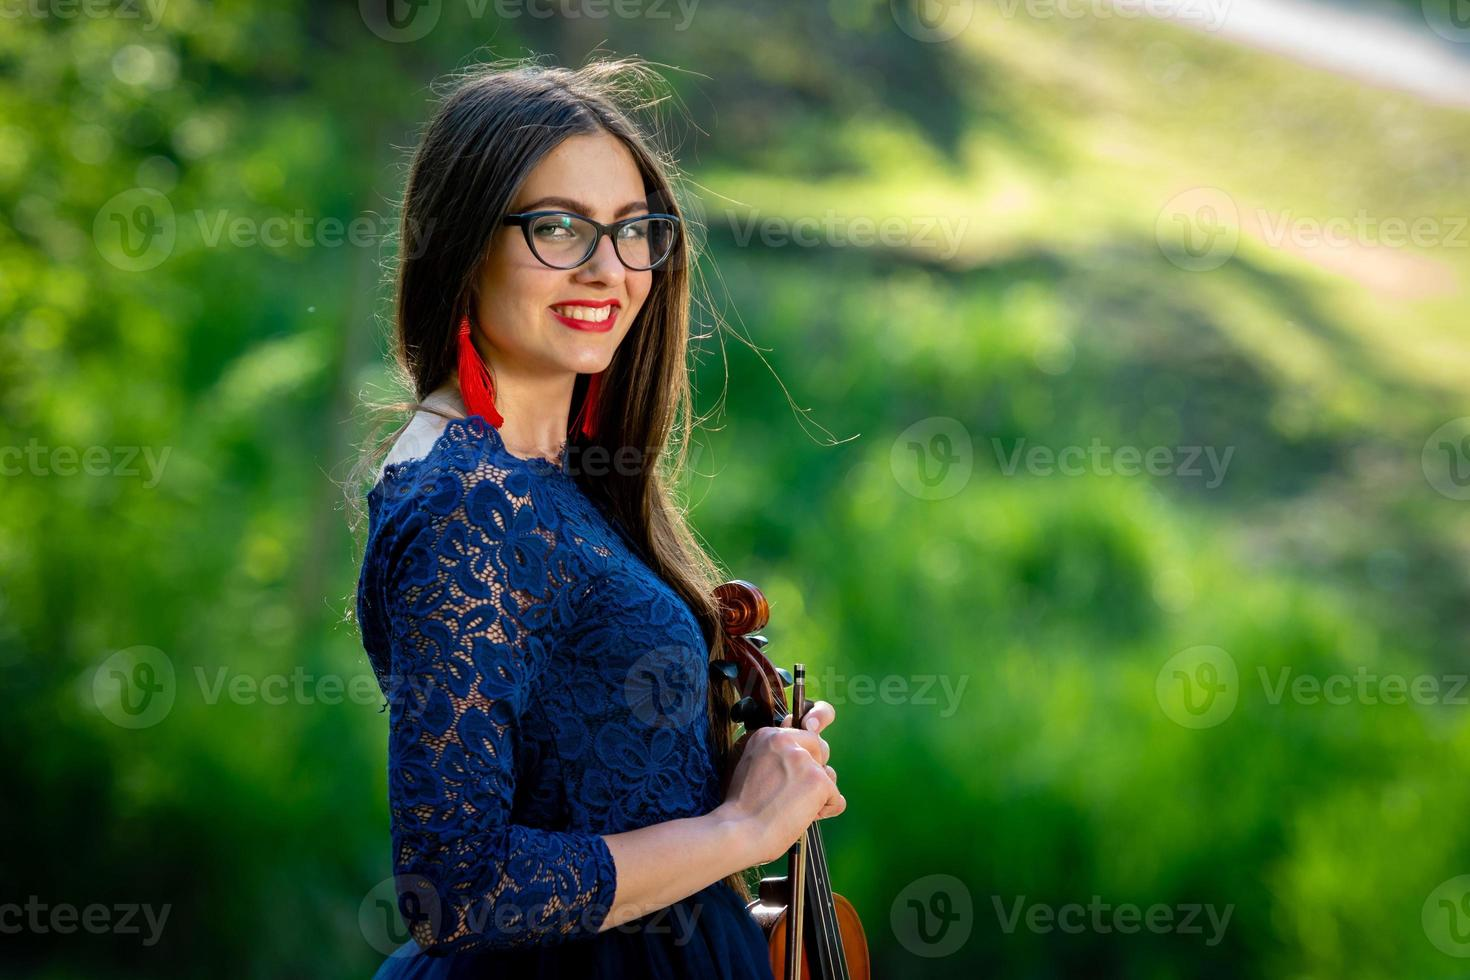 Young woman  with violin at park. Shallow depth of field - image photo